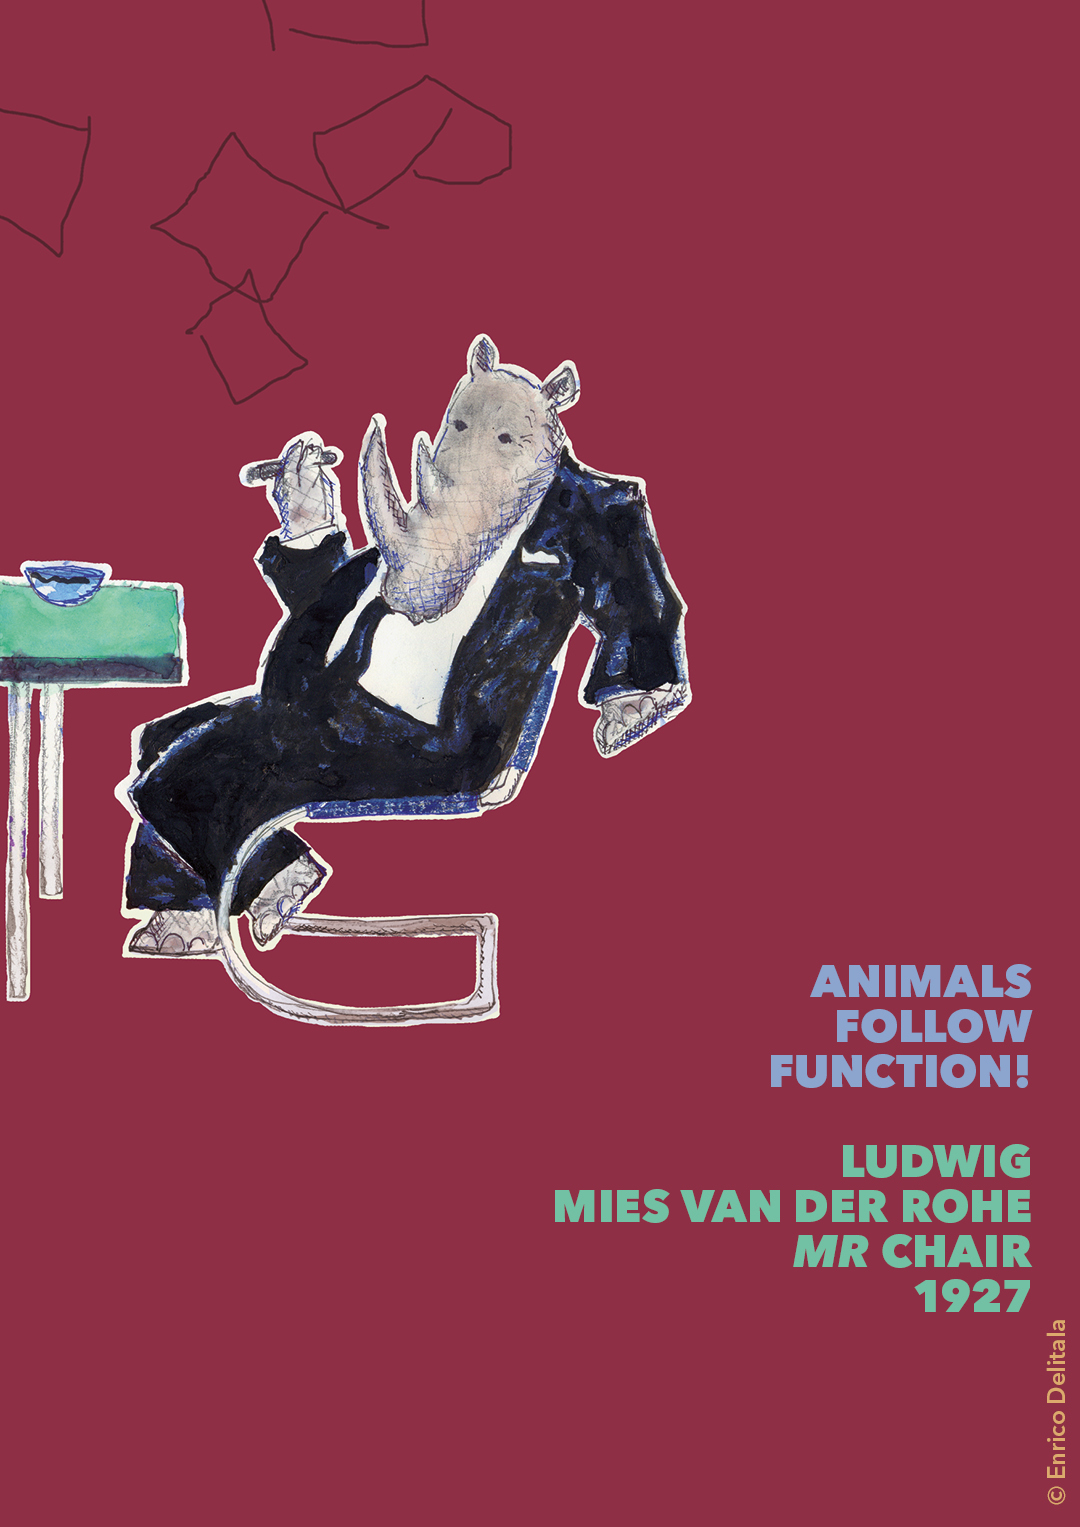 Rinoceronte: Enrico Delitala illustrator animals follow function form follows function Mies van der Rohe Ludvig Mies van der Rohe MR chair